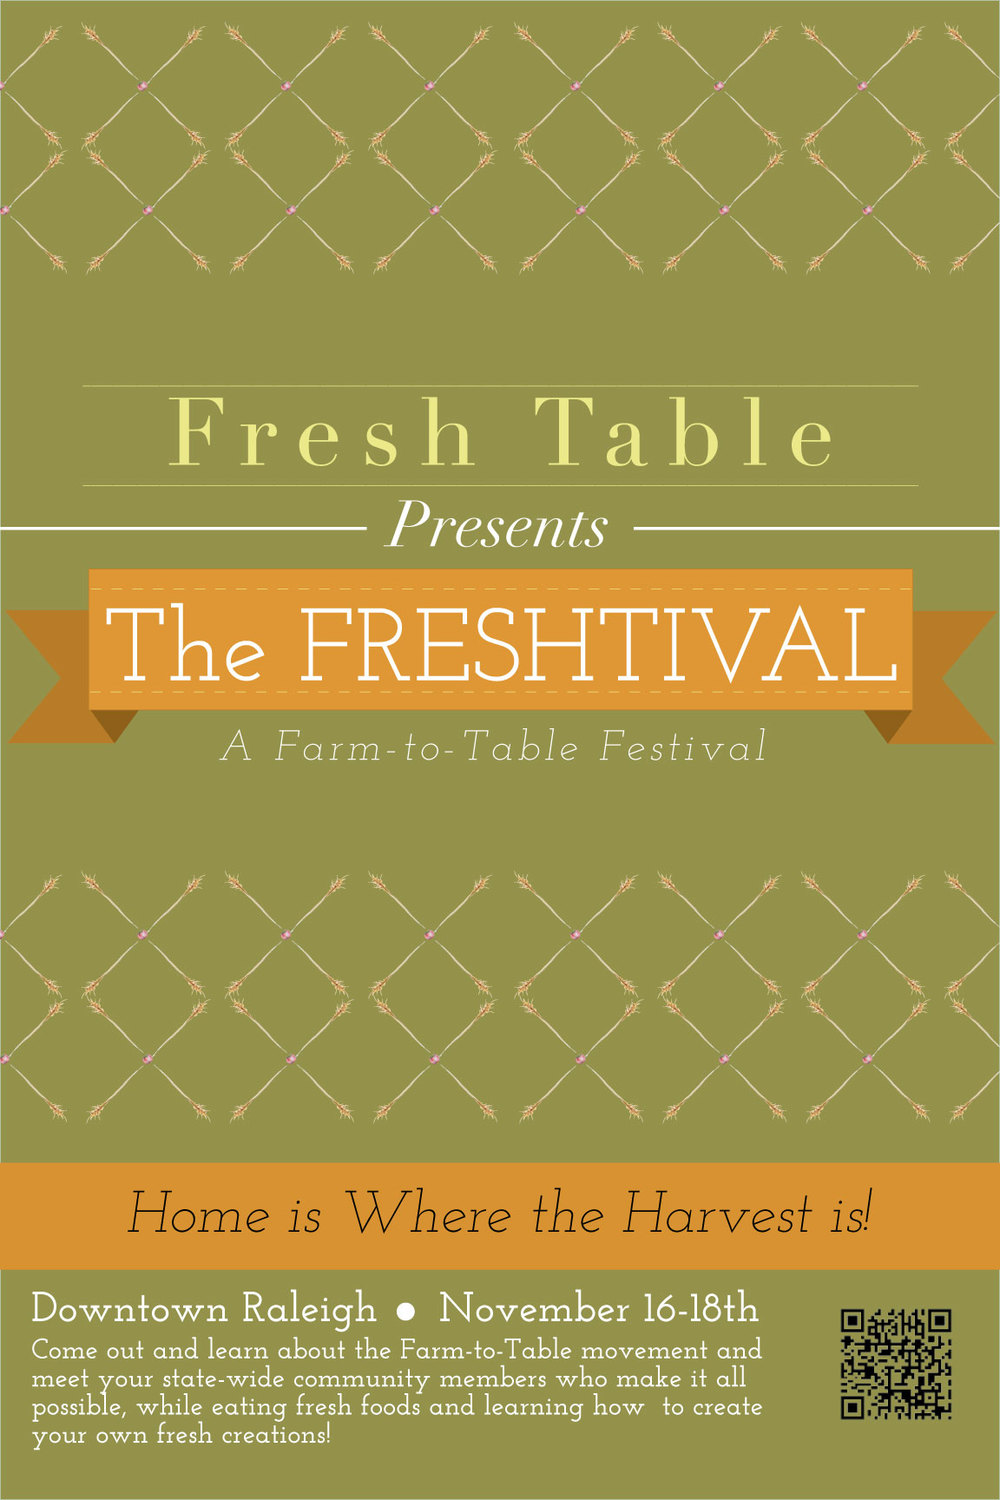 FRESH_TABLE_FRESHTIVAL_POSTERS_FINAL_1.jpg